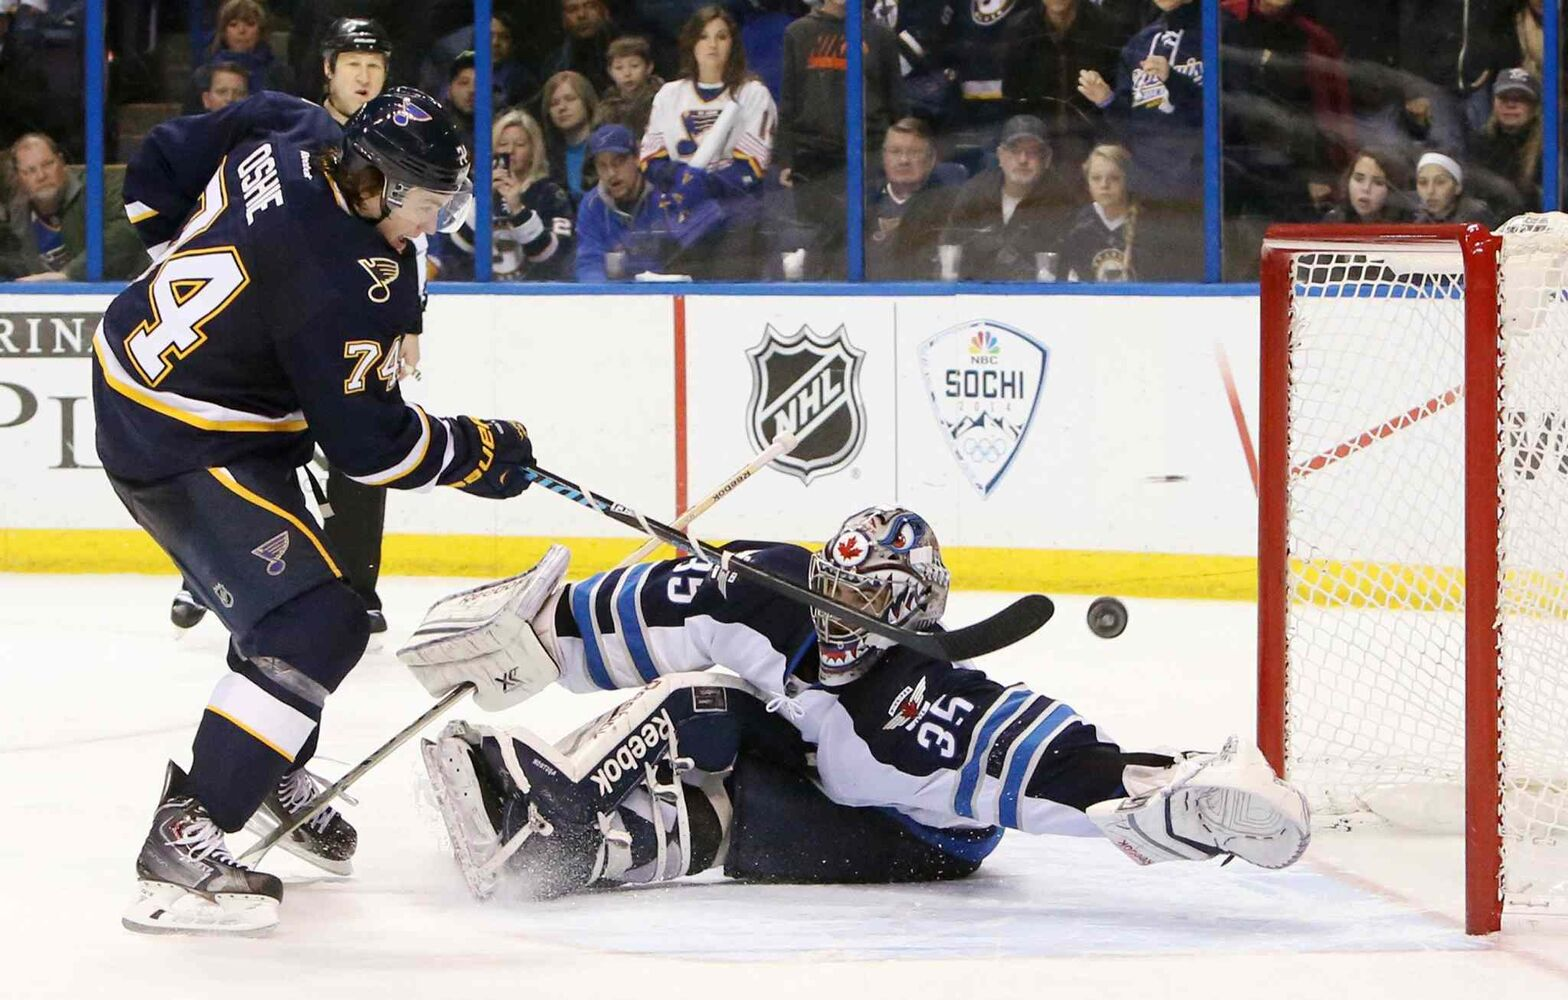 T.J. Oshie of the St. Louis Blues scores a shootout goal against Winnipeg Jets' goalie Al Montoya to win Saturday's game. (Chris Lee/St. Louis Post-Dispatch/MCT)